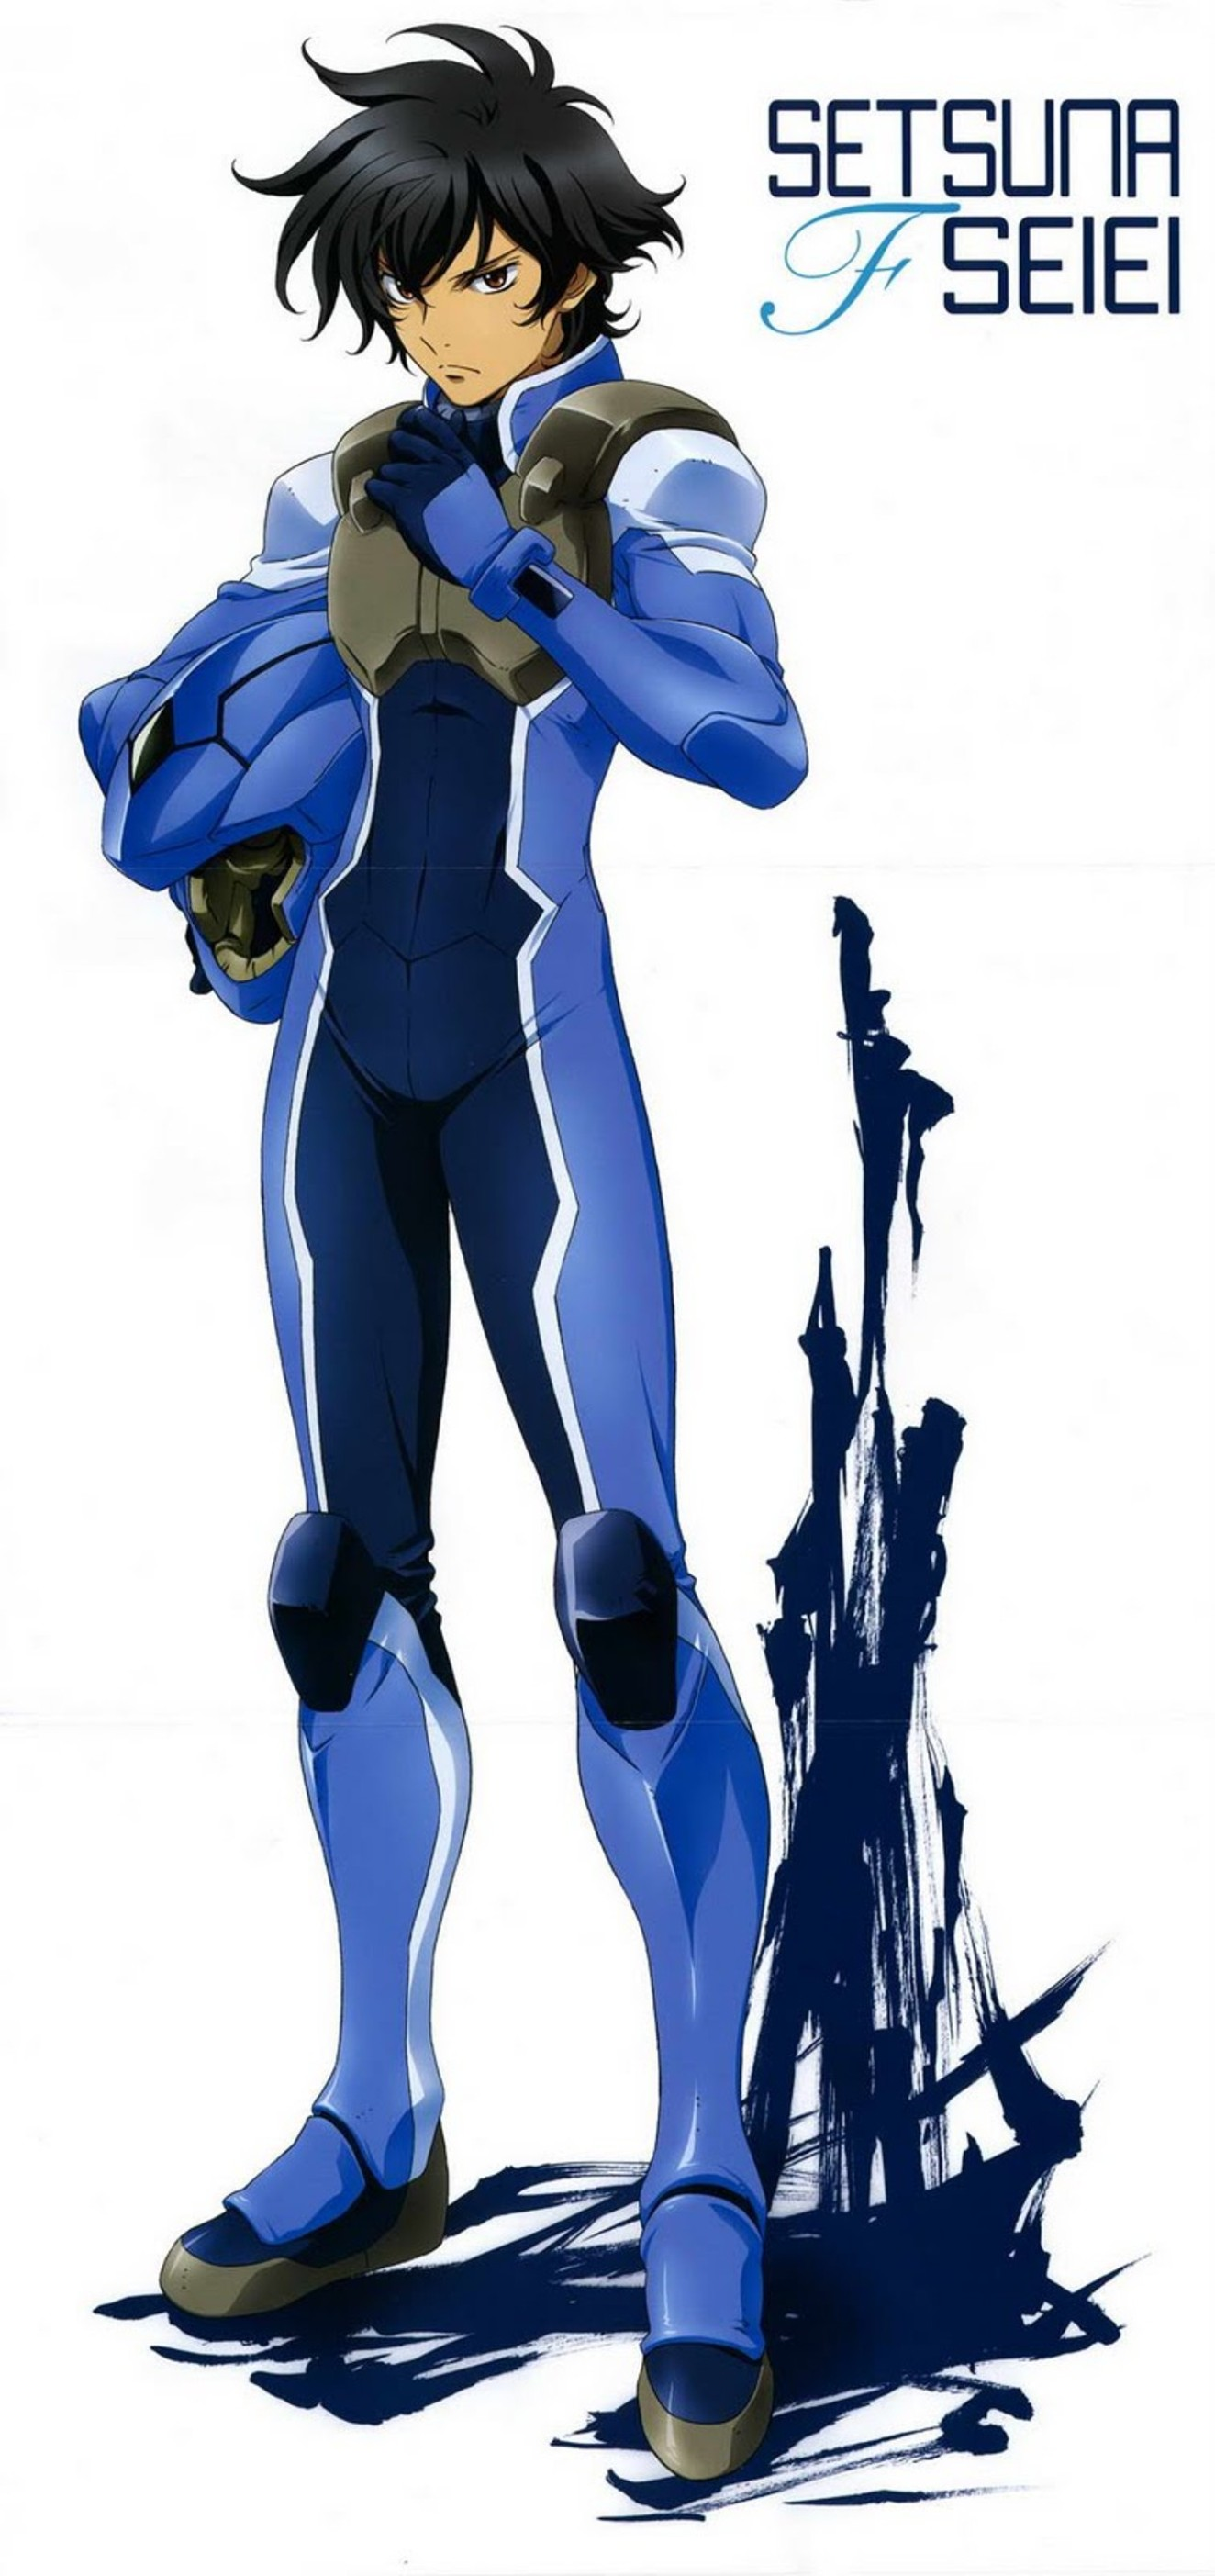 Anime Space Suit - Pics about space